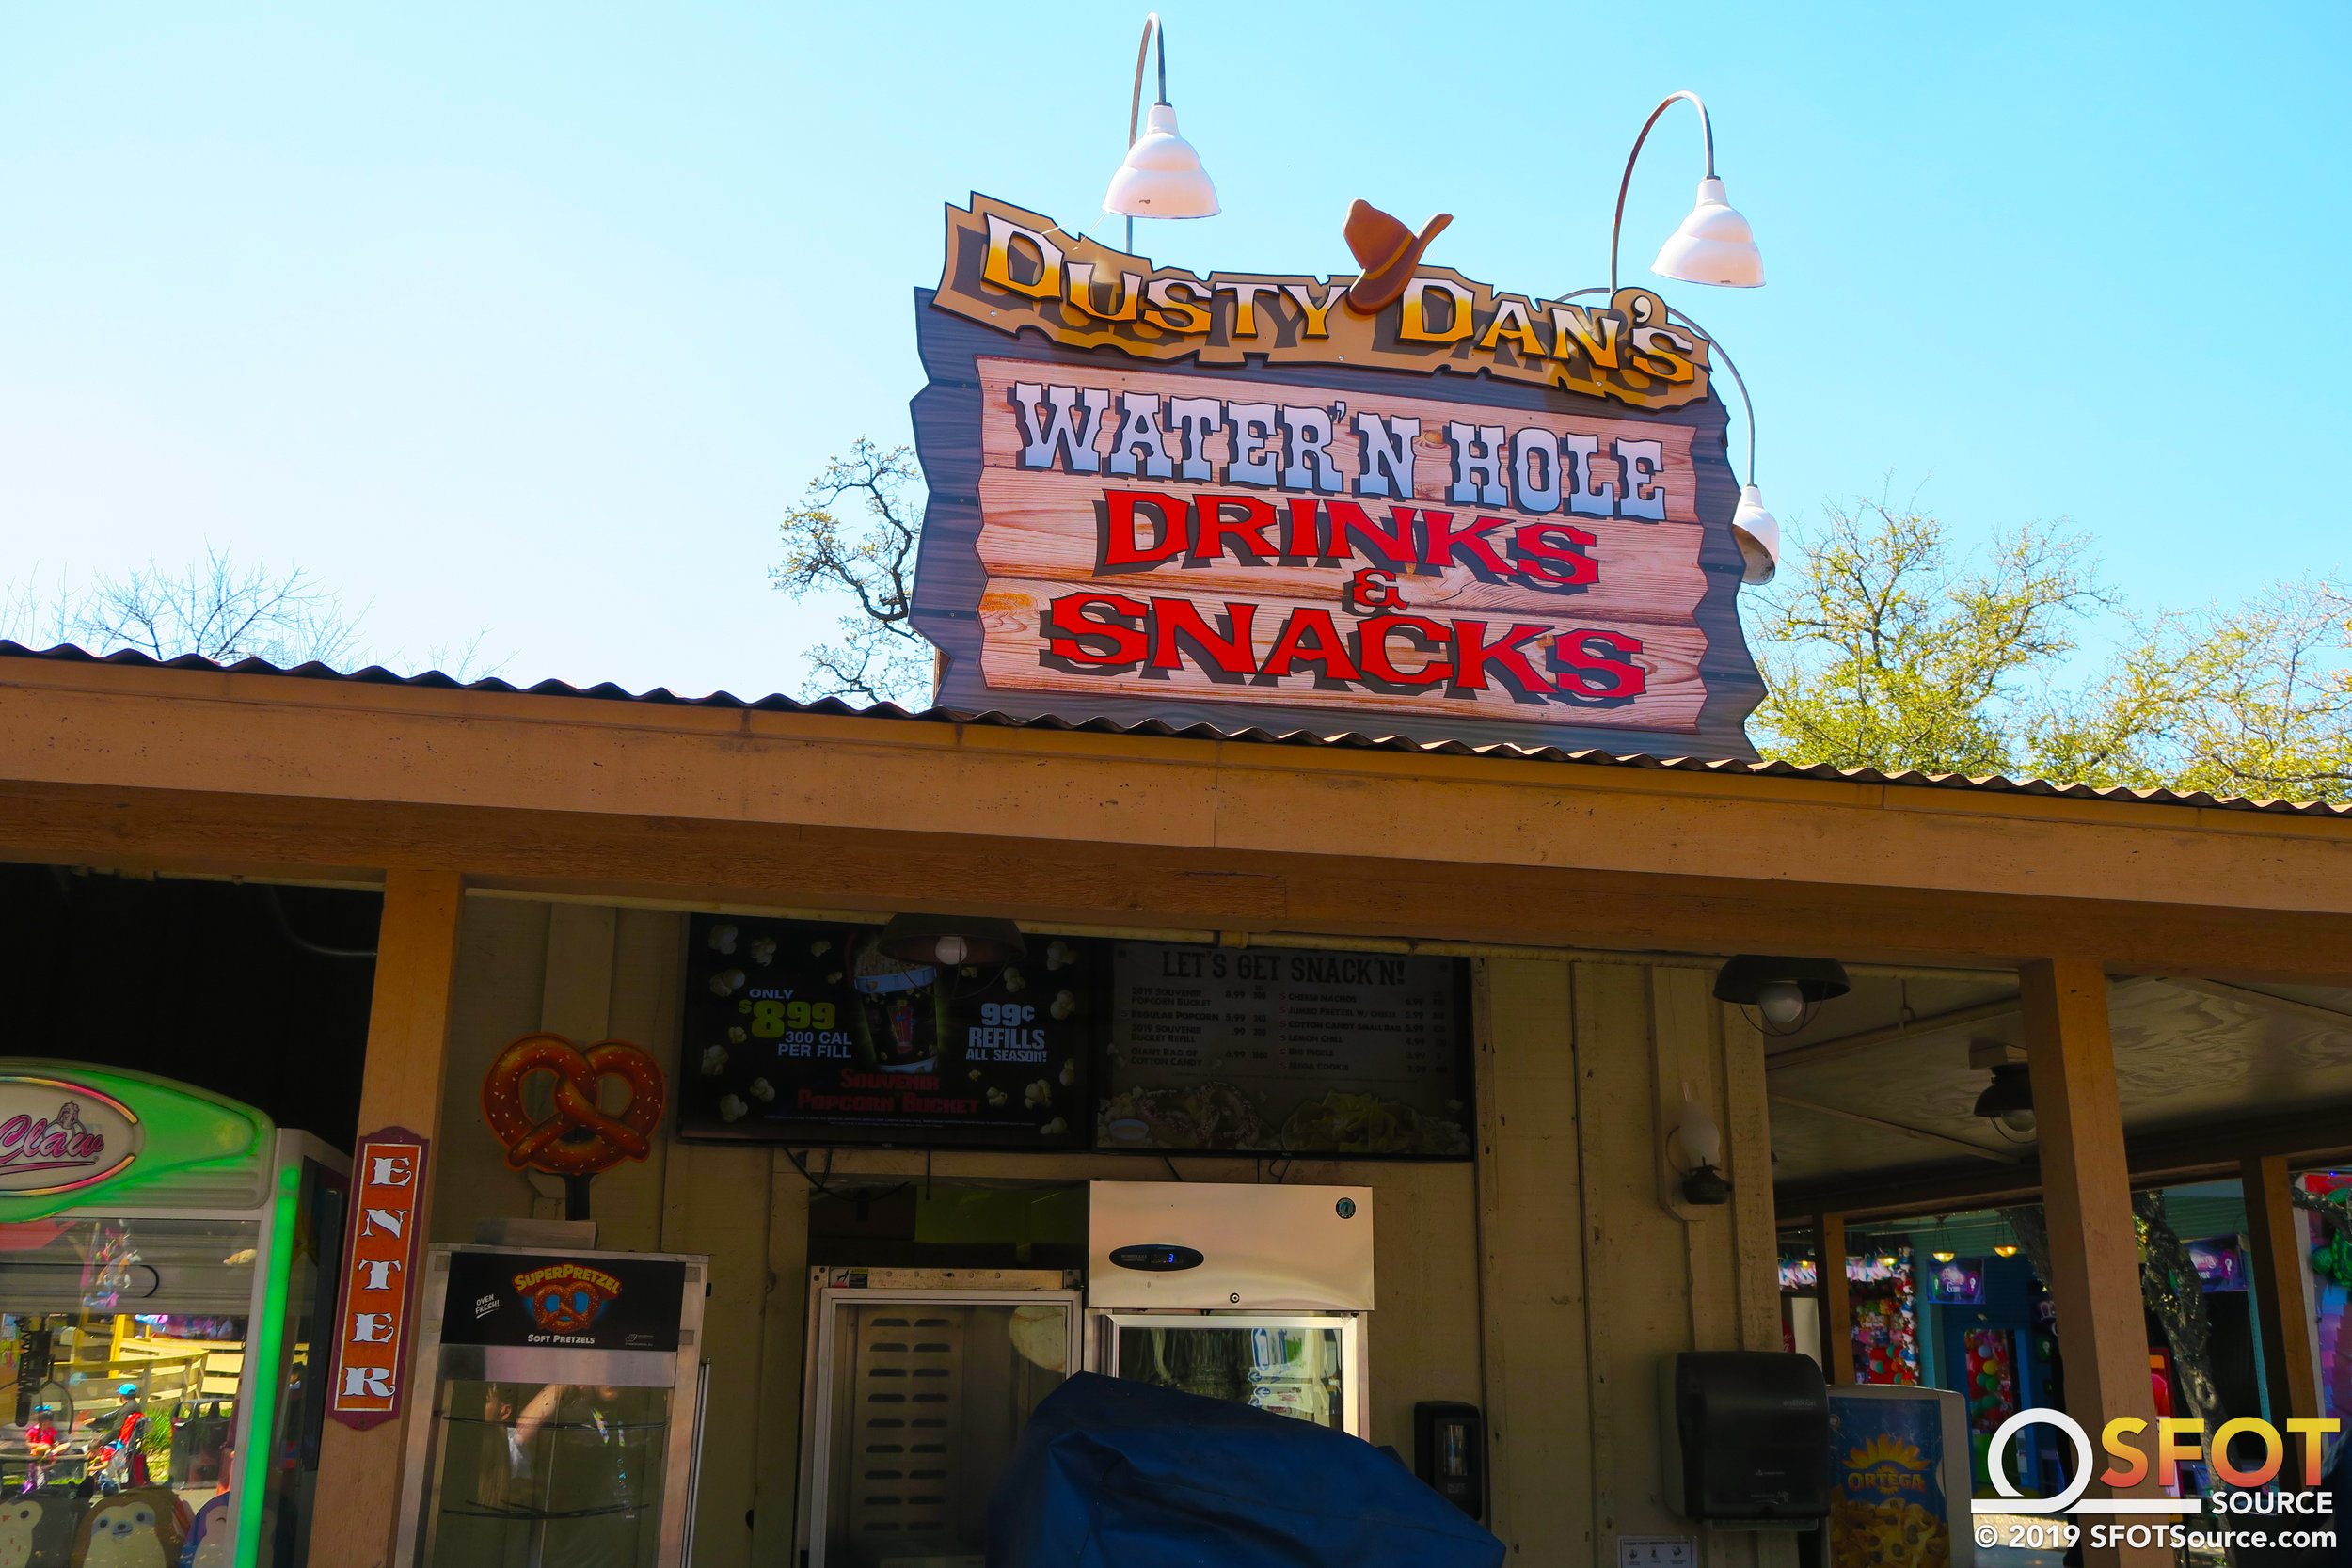 Dusty Dan's features many Dining Pass snack options.